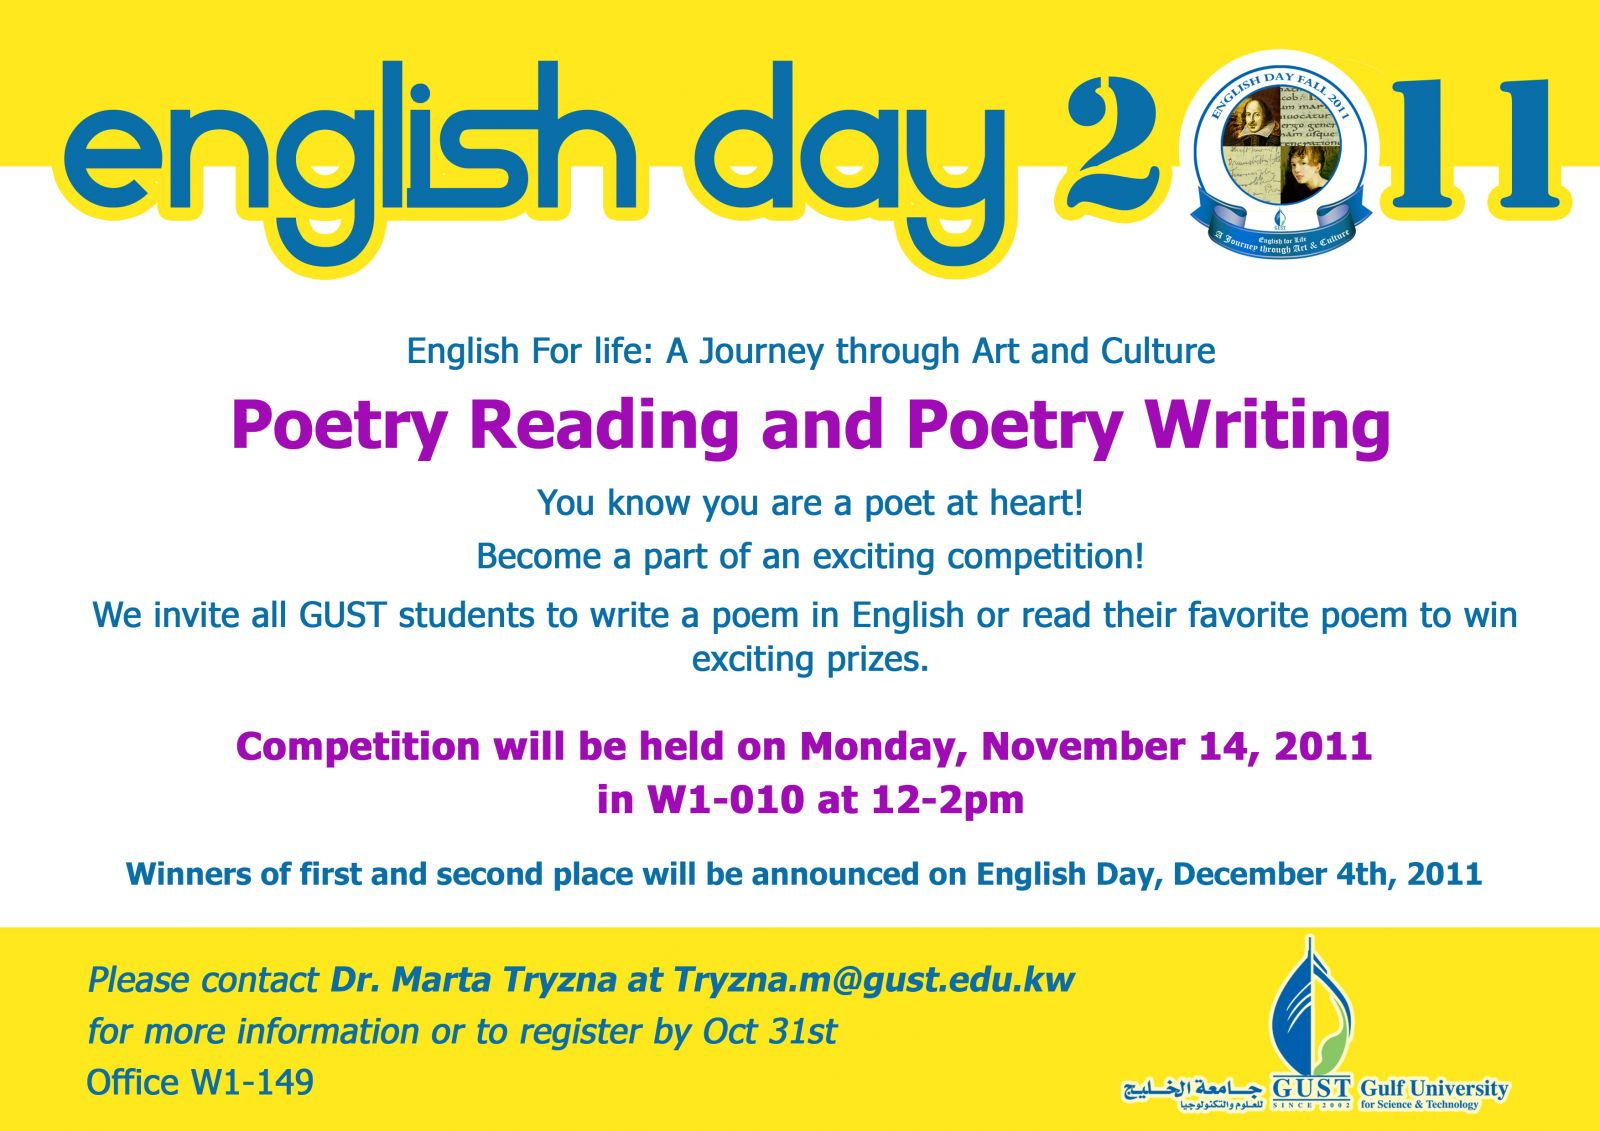 English Day 2011 - 2012 | GUST